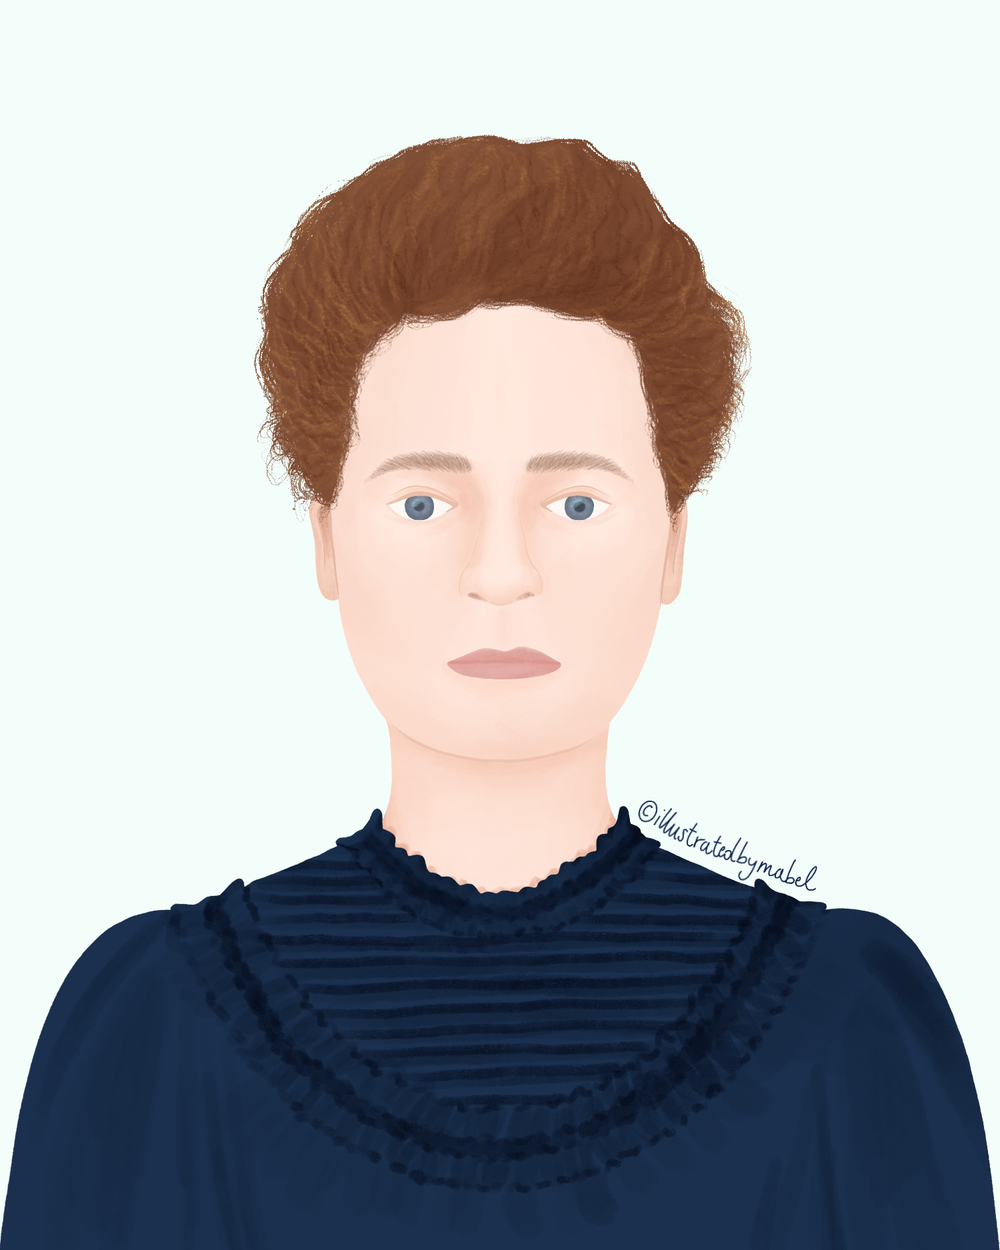 marie curie illustration